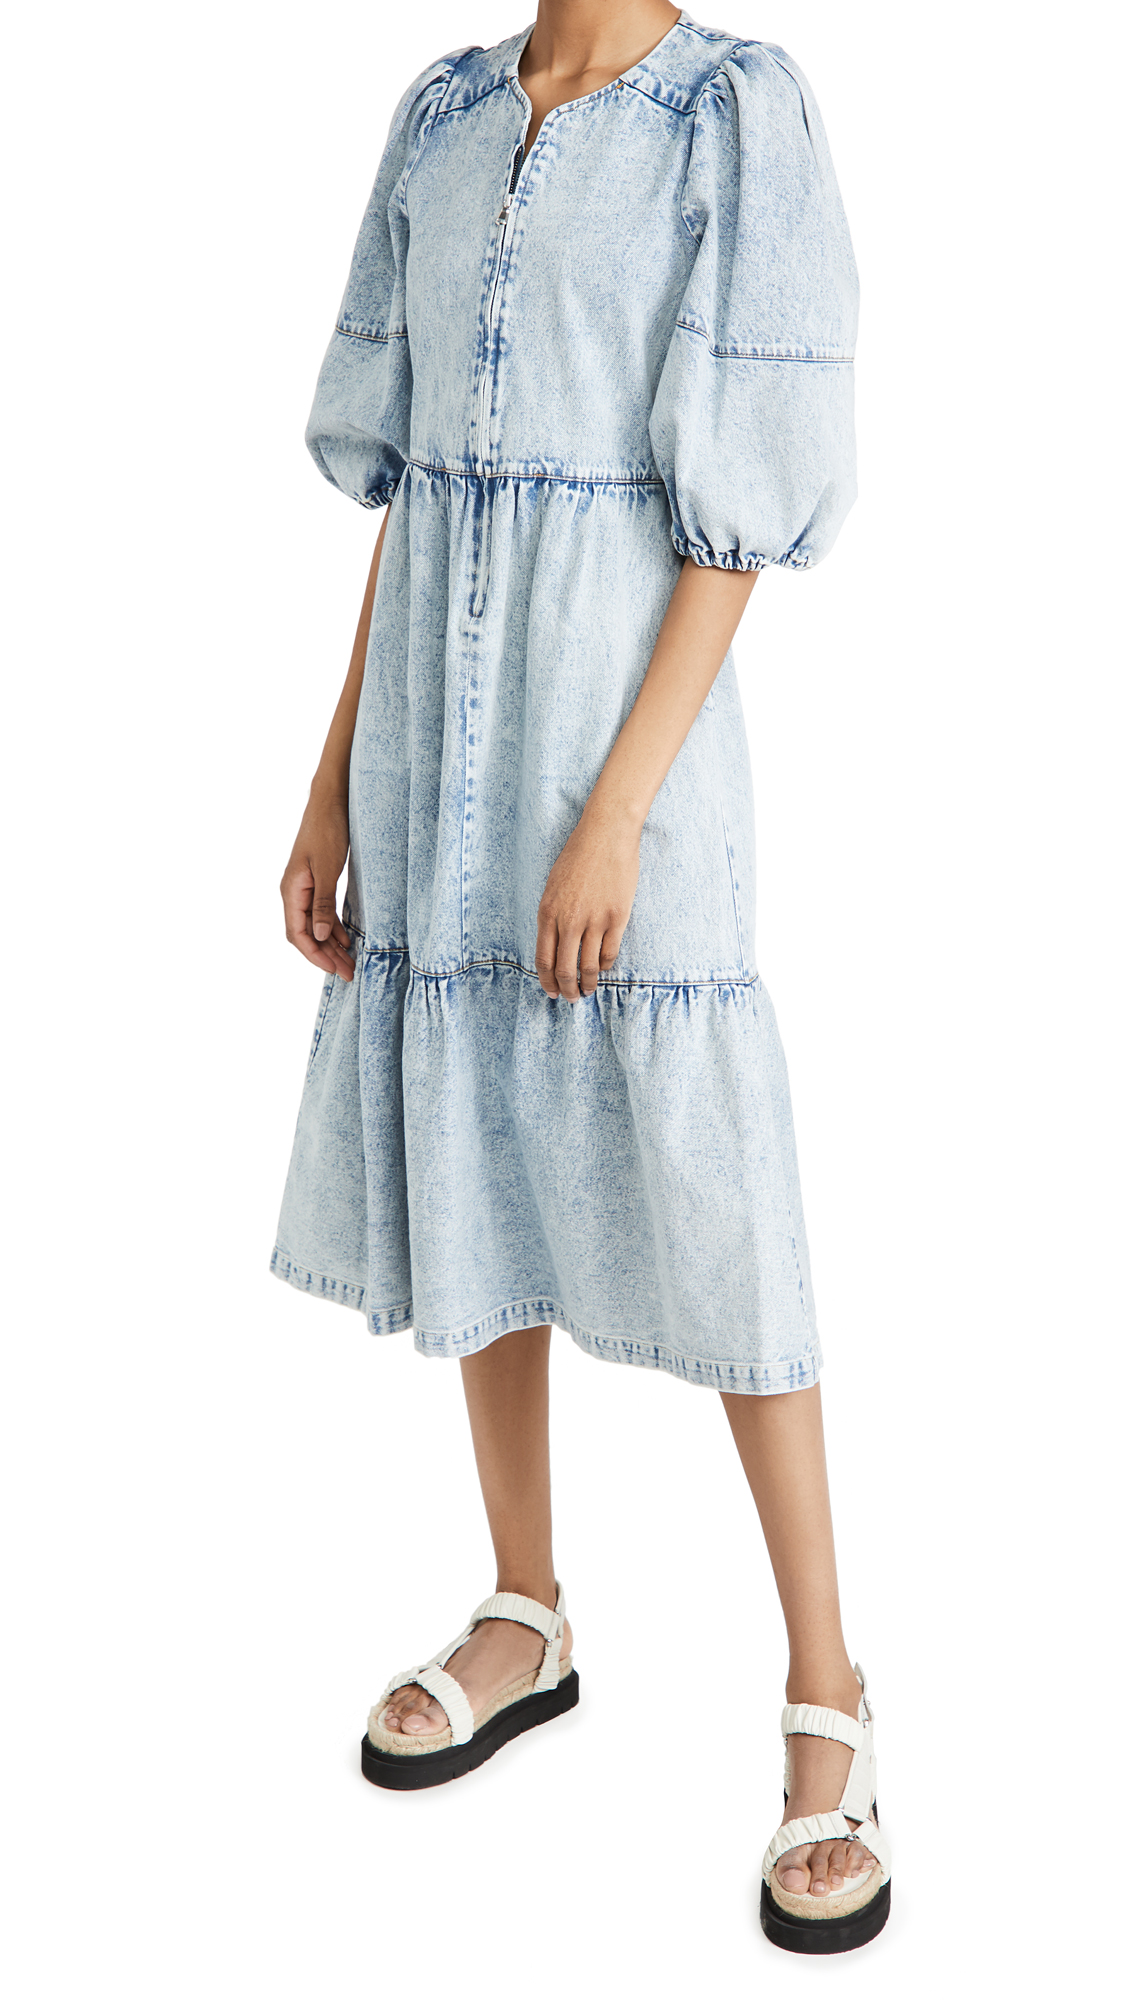 Sea Dax Acid Wash Denim Puff Sleeve Dress